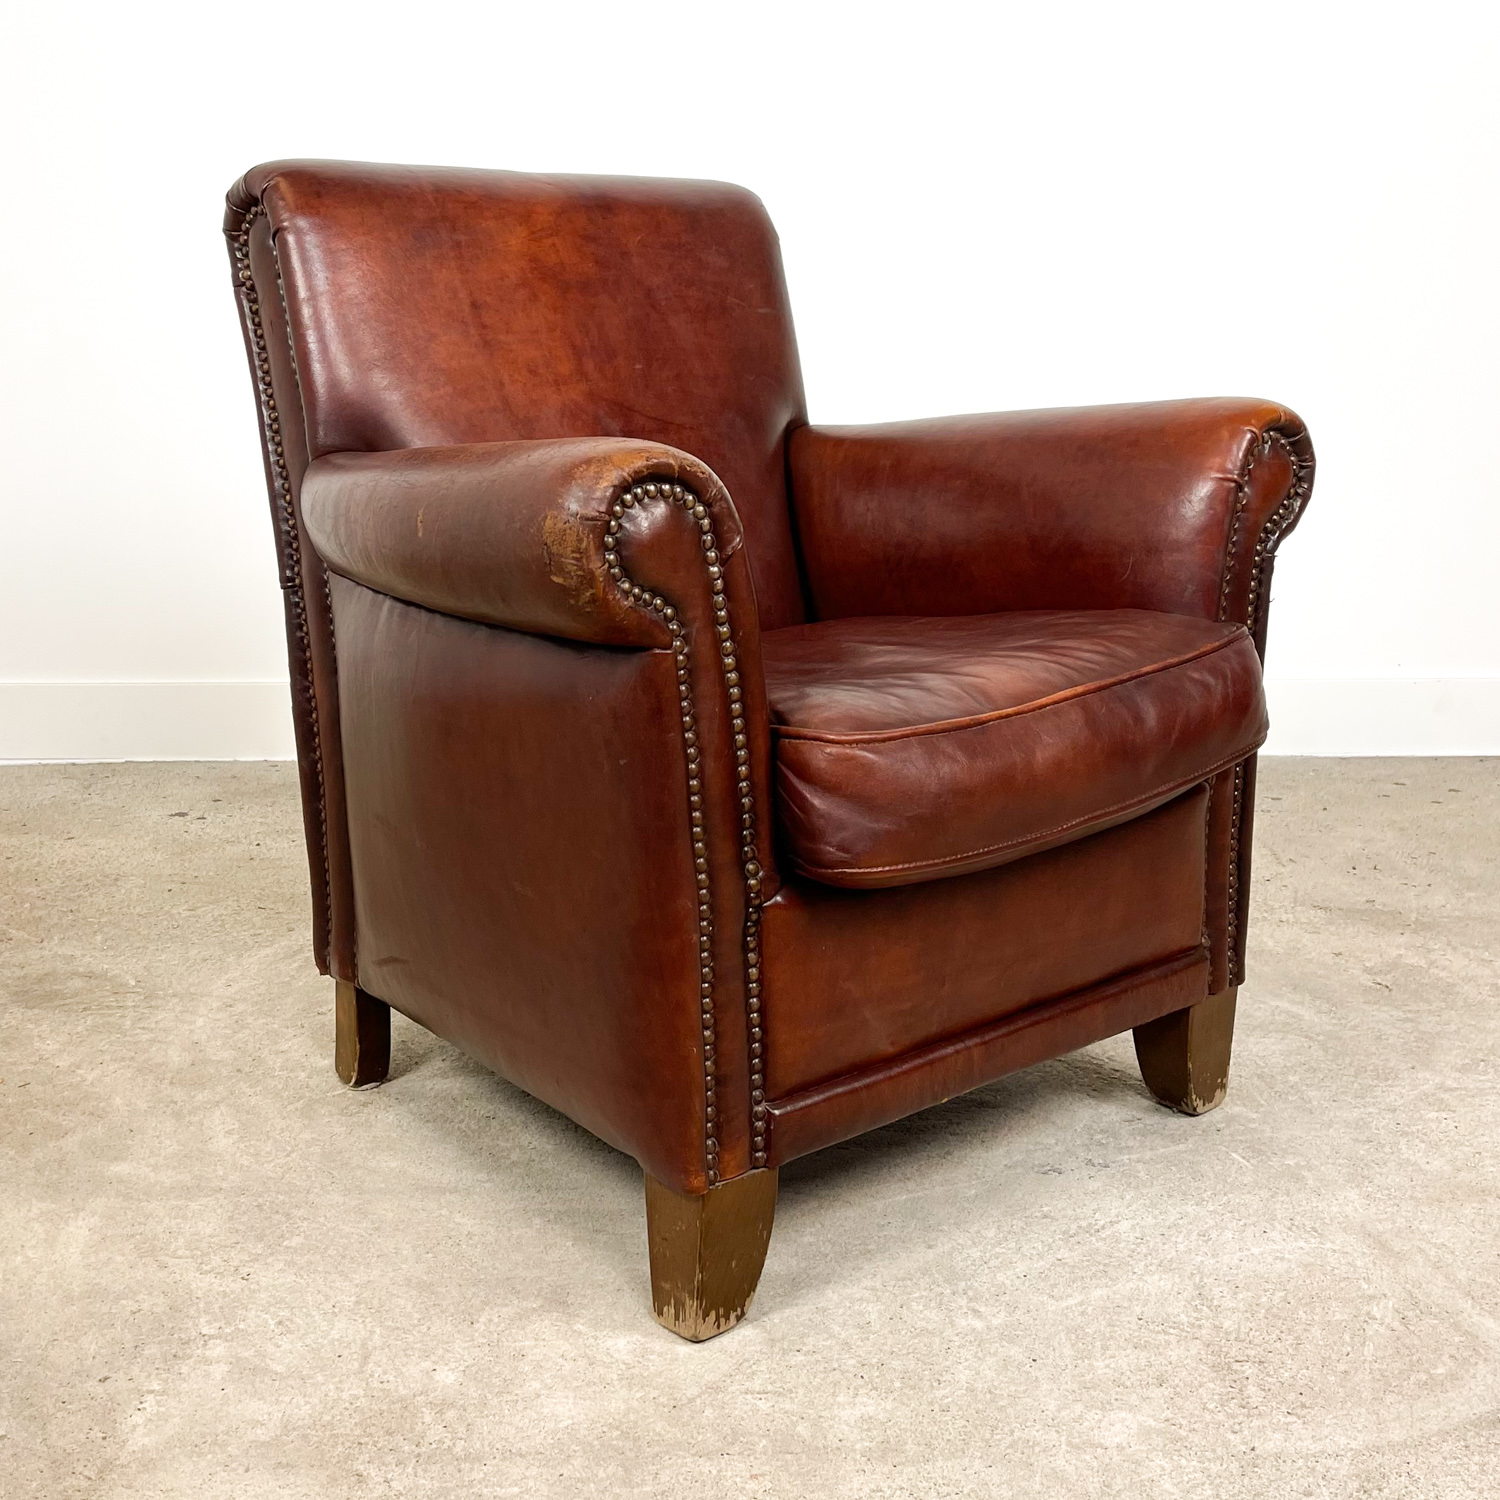 Vintage dark brown sheep leather armchair